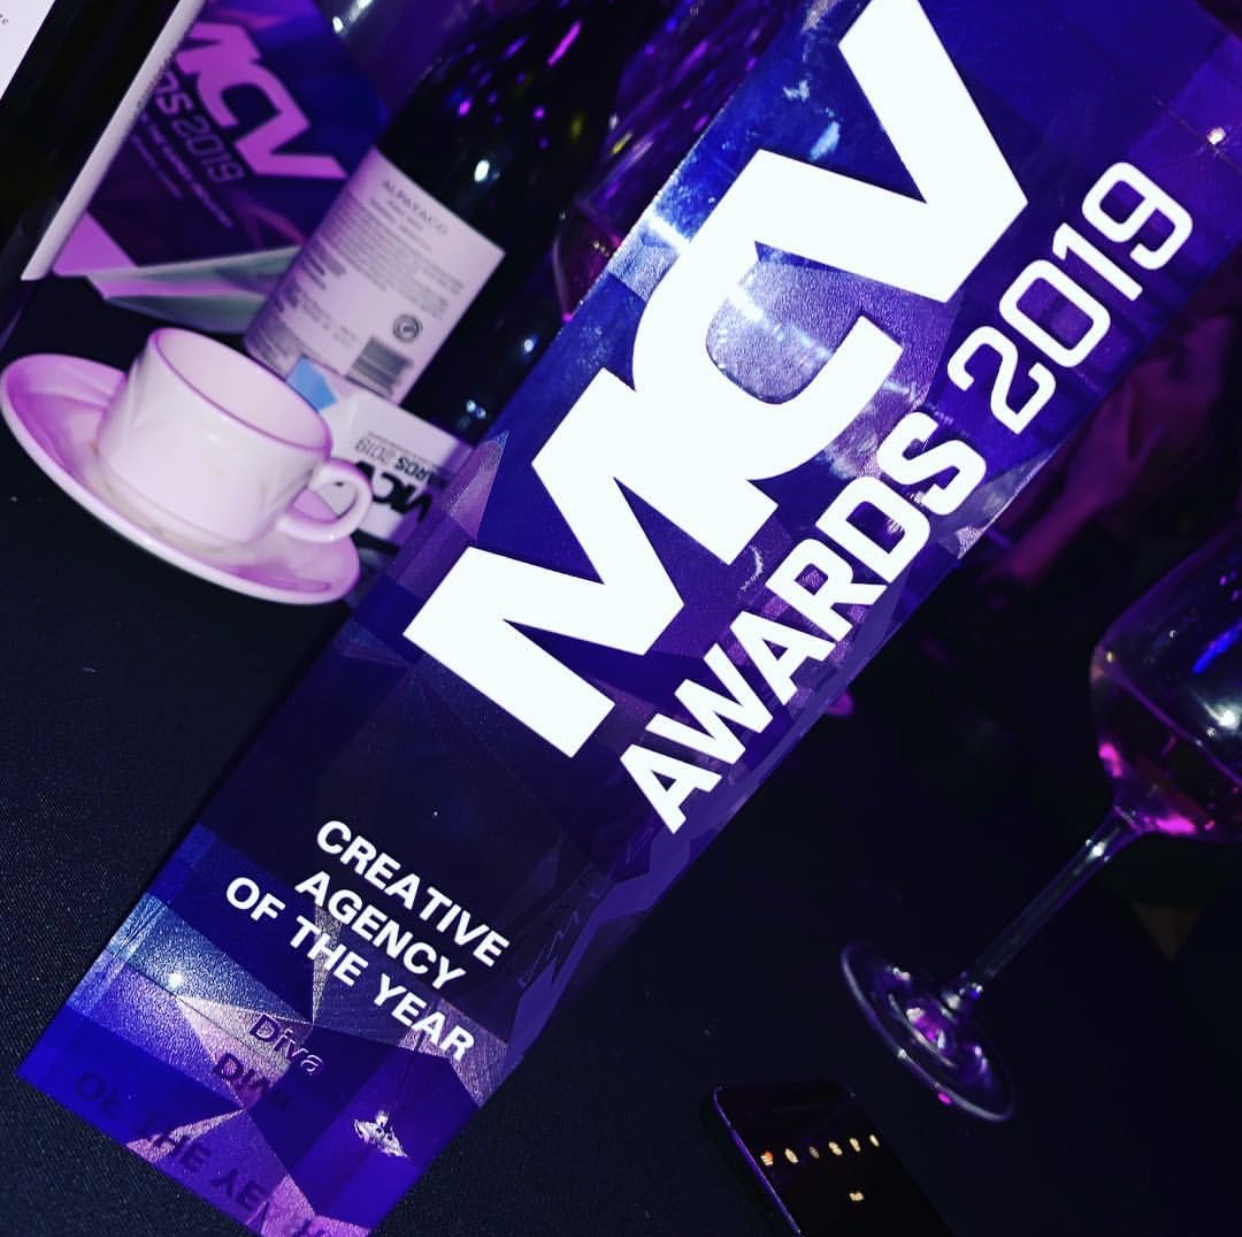 MCV Awards 2019 – The Brewery